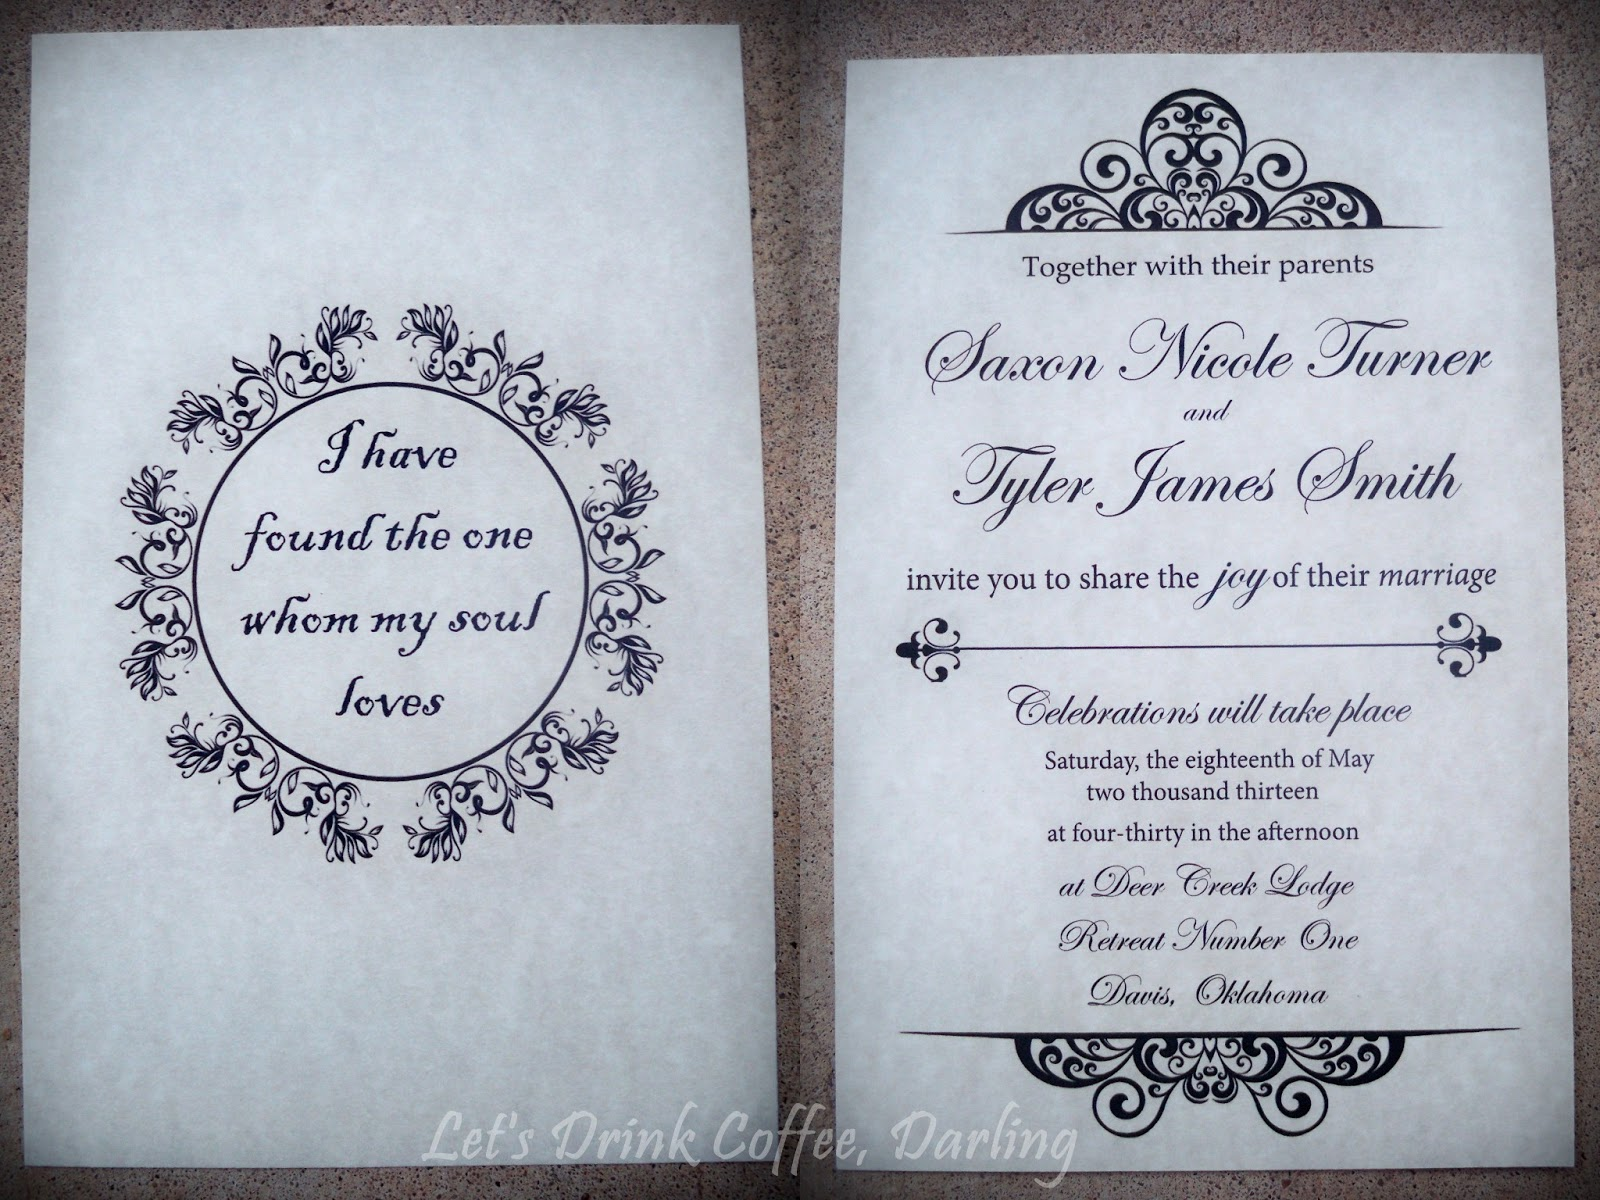 What Goes On A Wedding Invitation: Let's Drink Coffee, Darling: Our Wedding Stationery